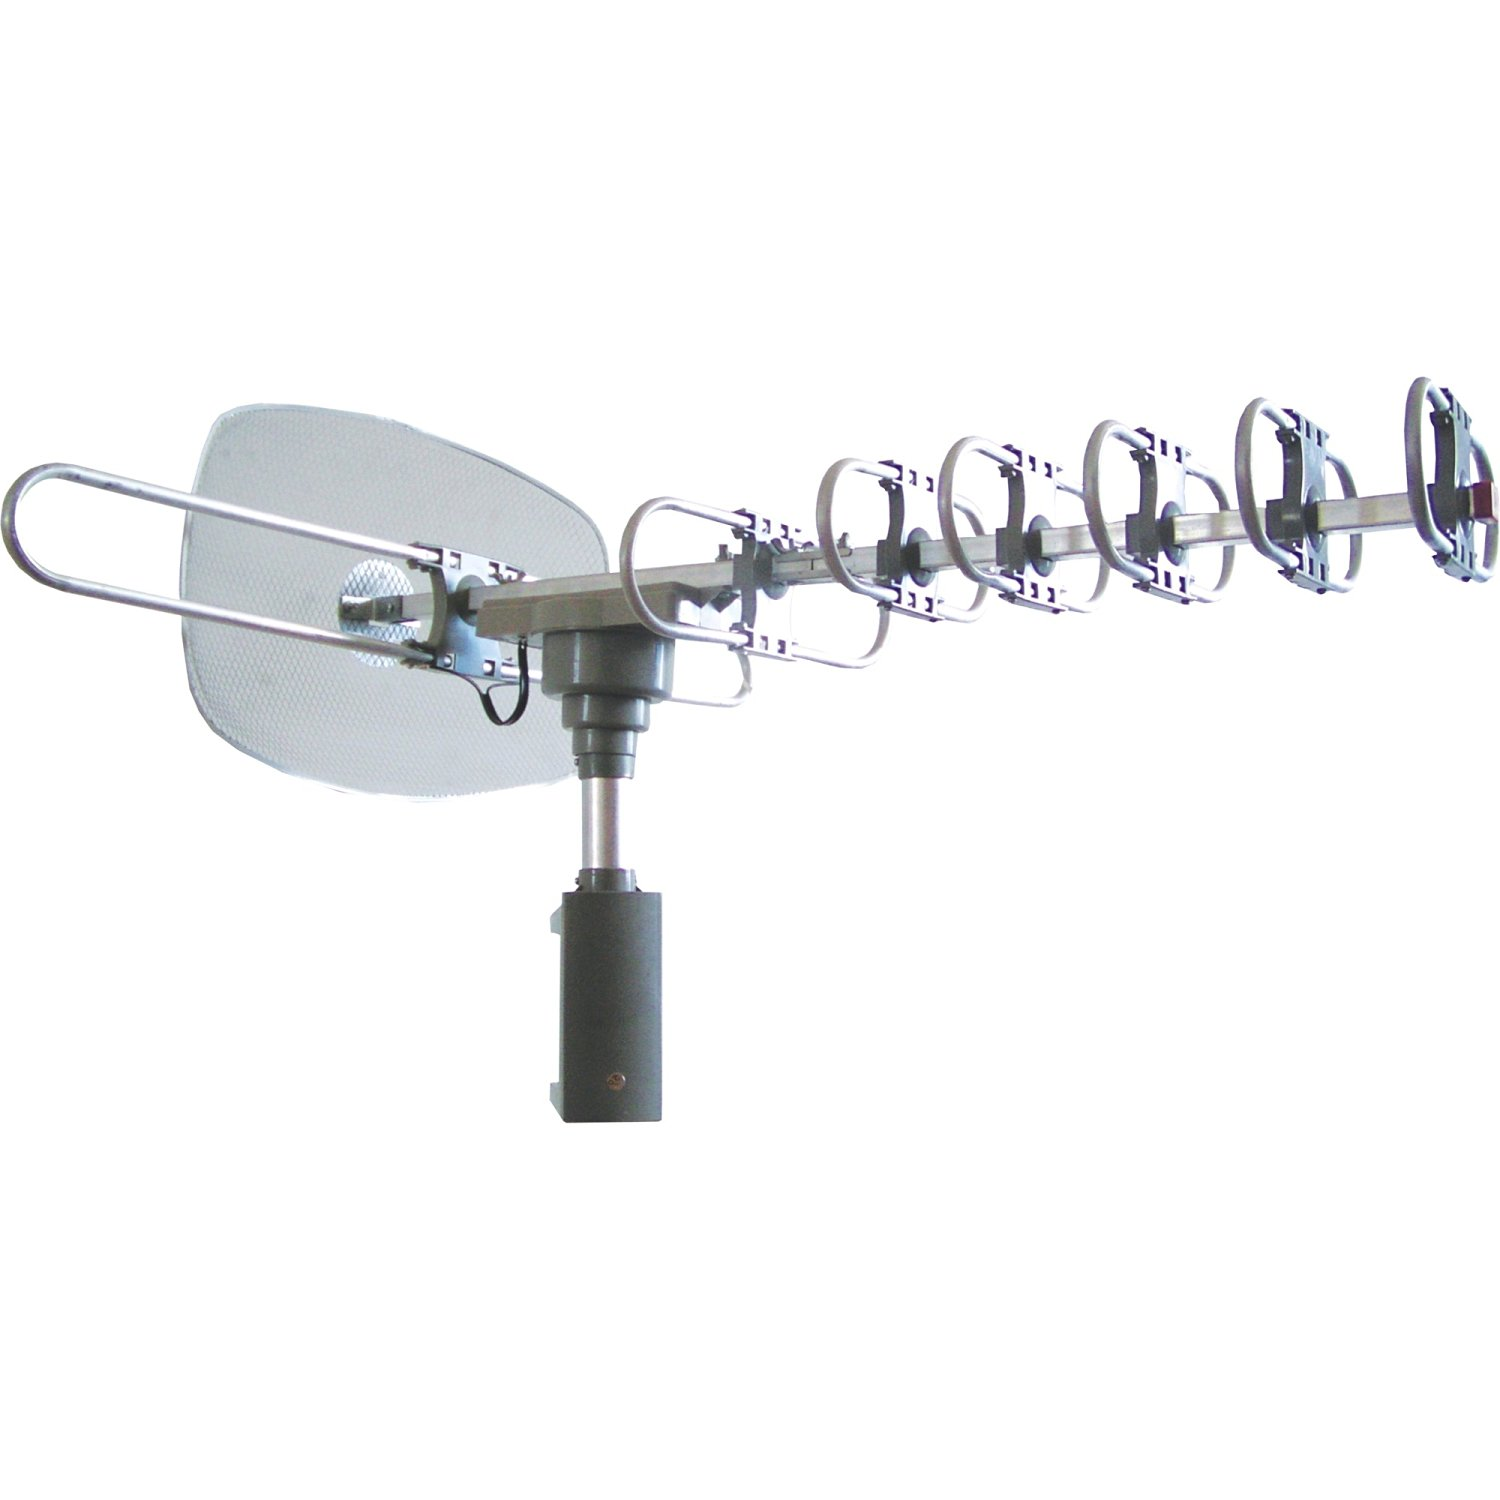 Supersonic SC-609 OUTDOOR SUPERIOR ROTATING ANTENNA